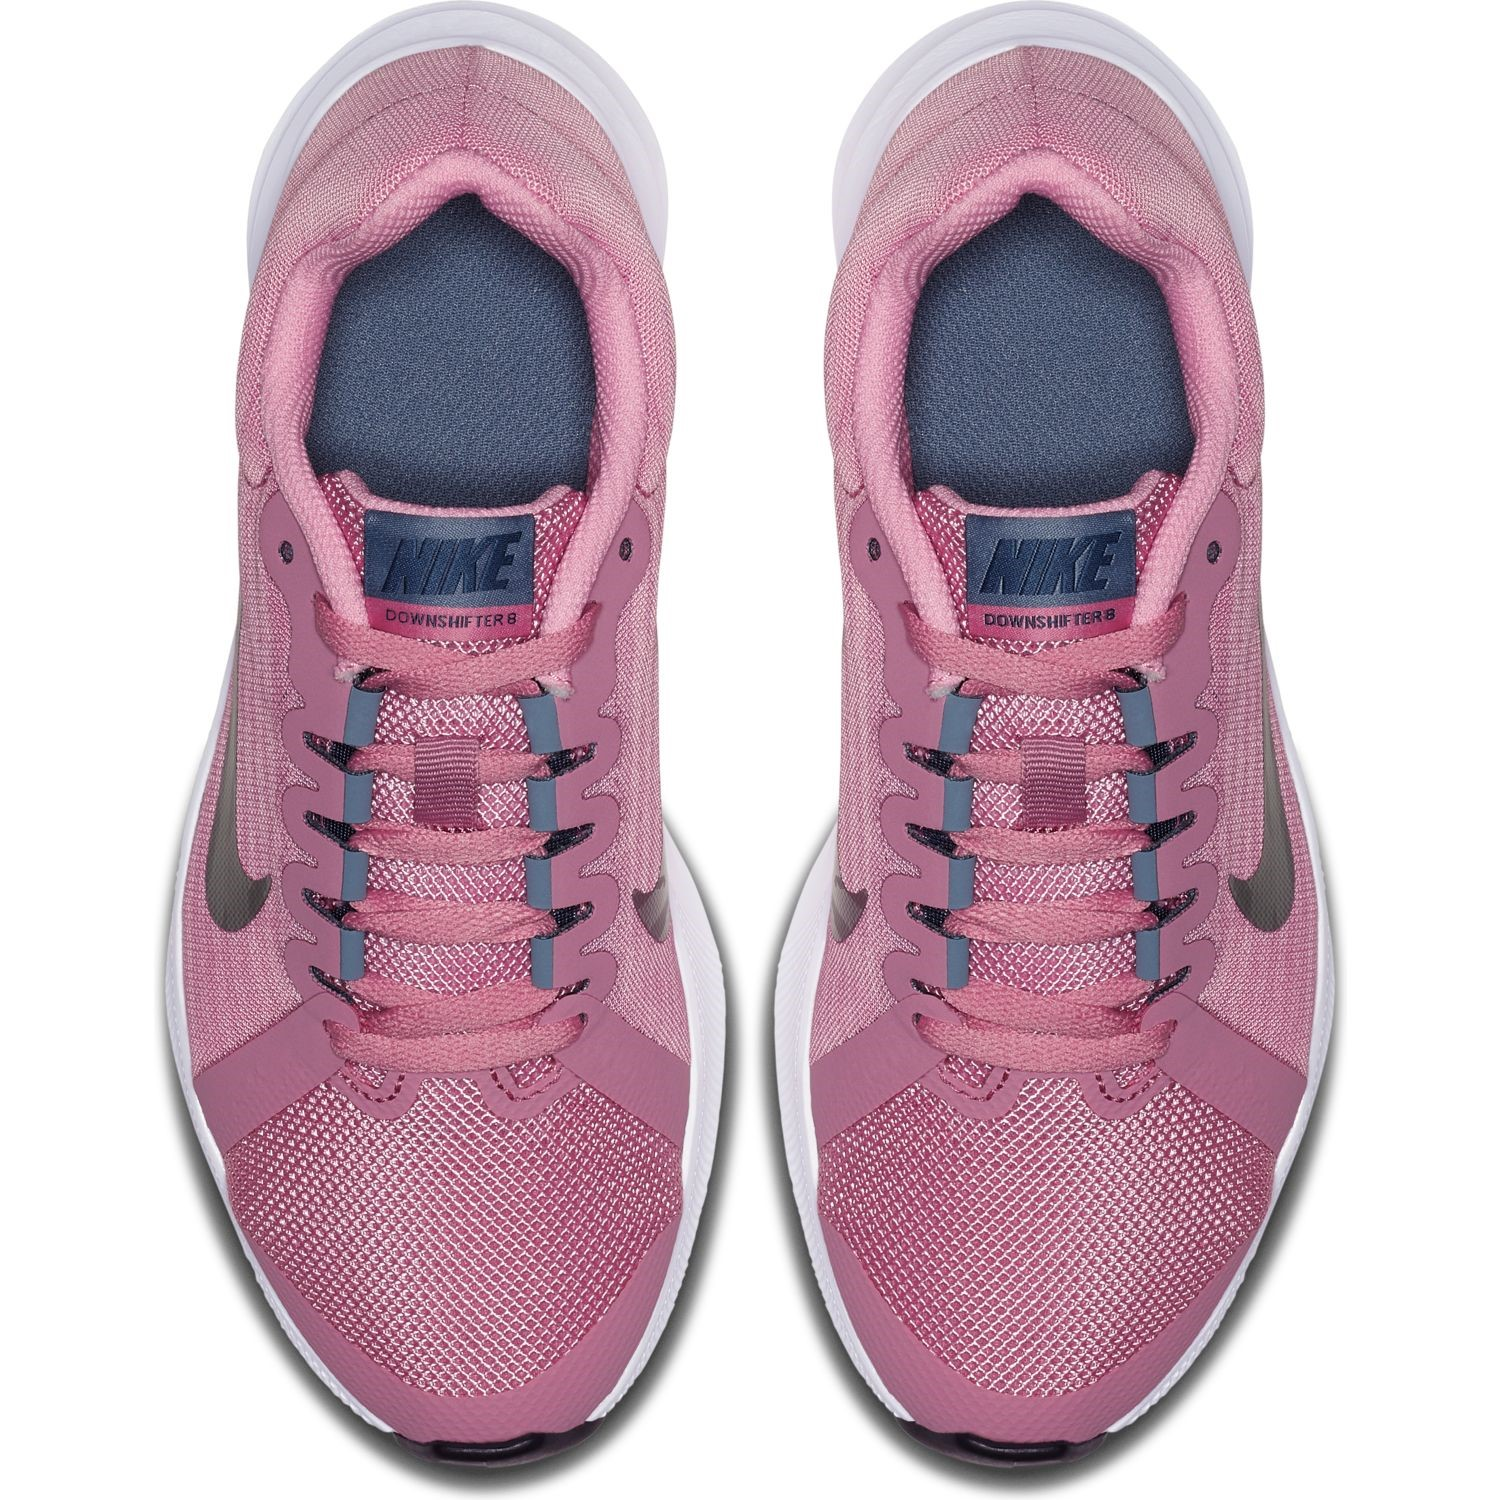 2e7a0fac3c56 Nike Downshifter 8 GS - Kids Girls Running Shoes - Elemental Pink Metallic  Silver